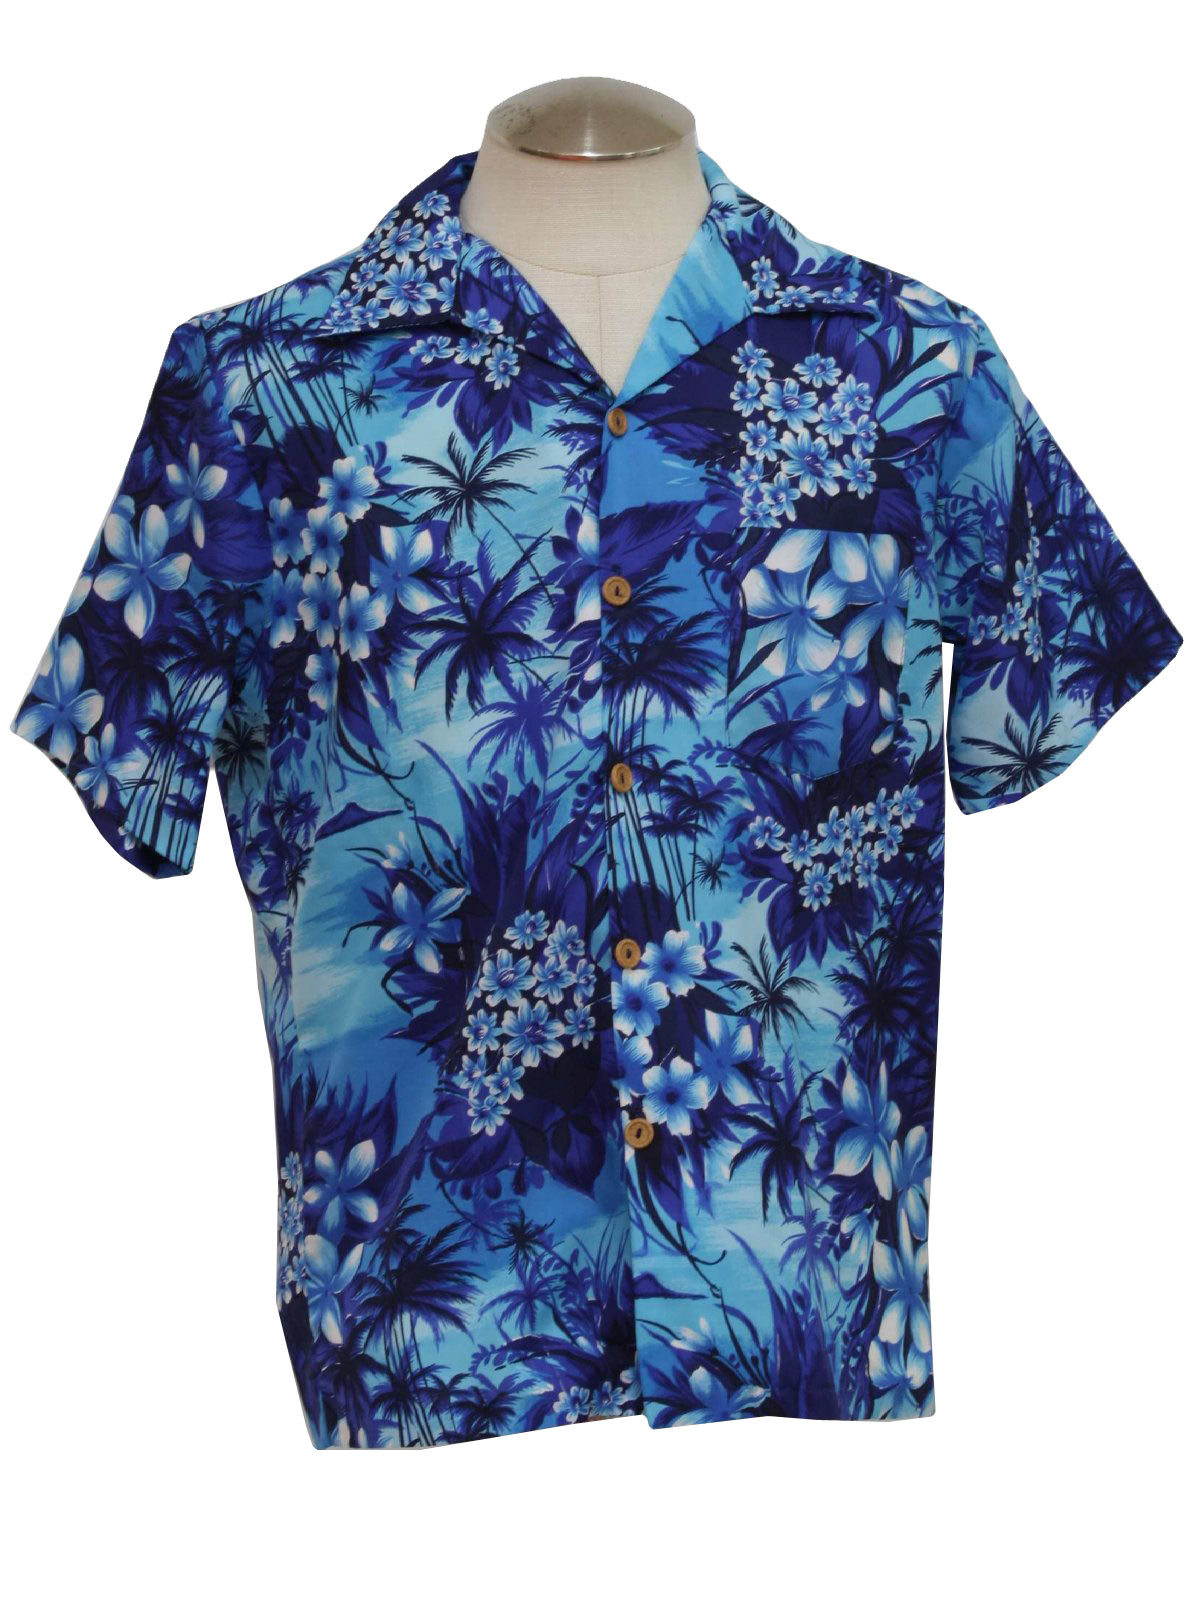 70\'s Vintage Hawaiian Shirt: 70s -Care Label Only- Mens navy blue ...